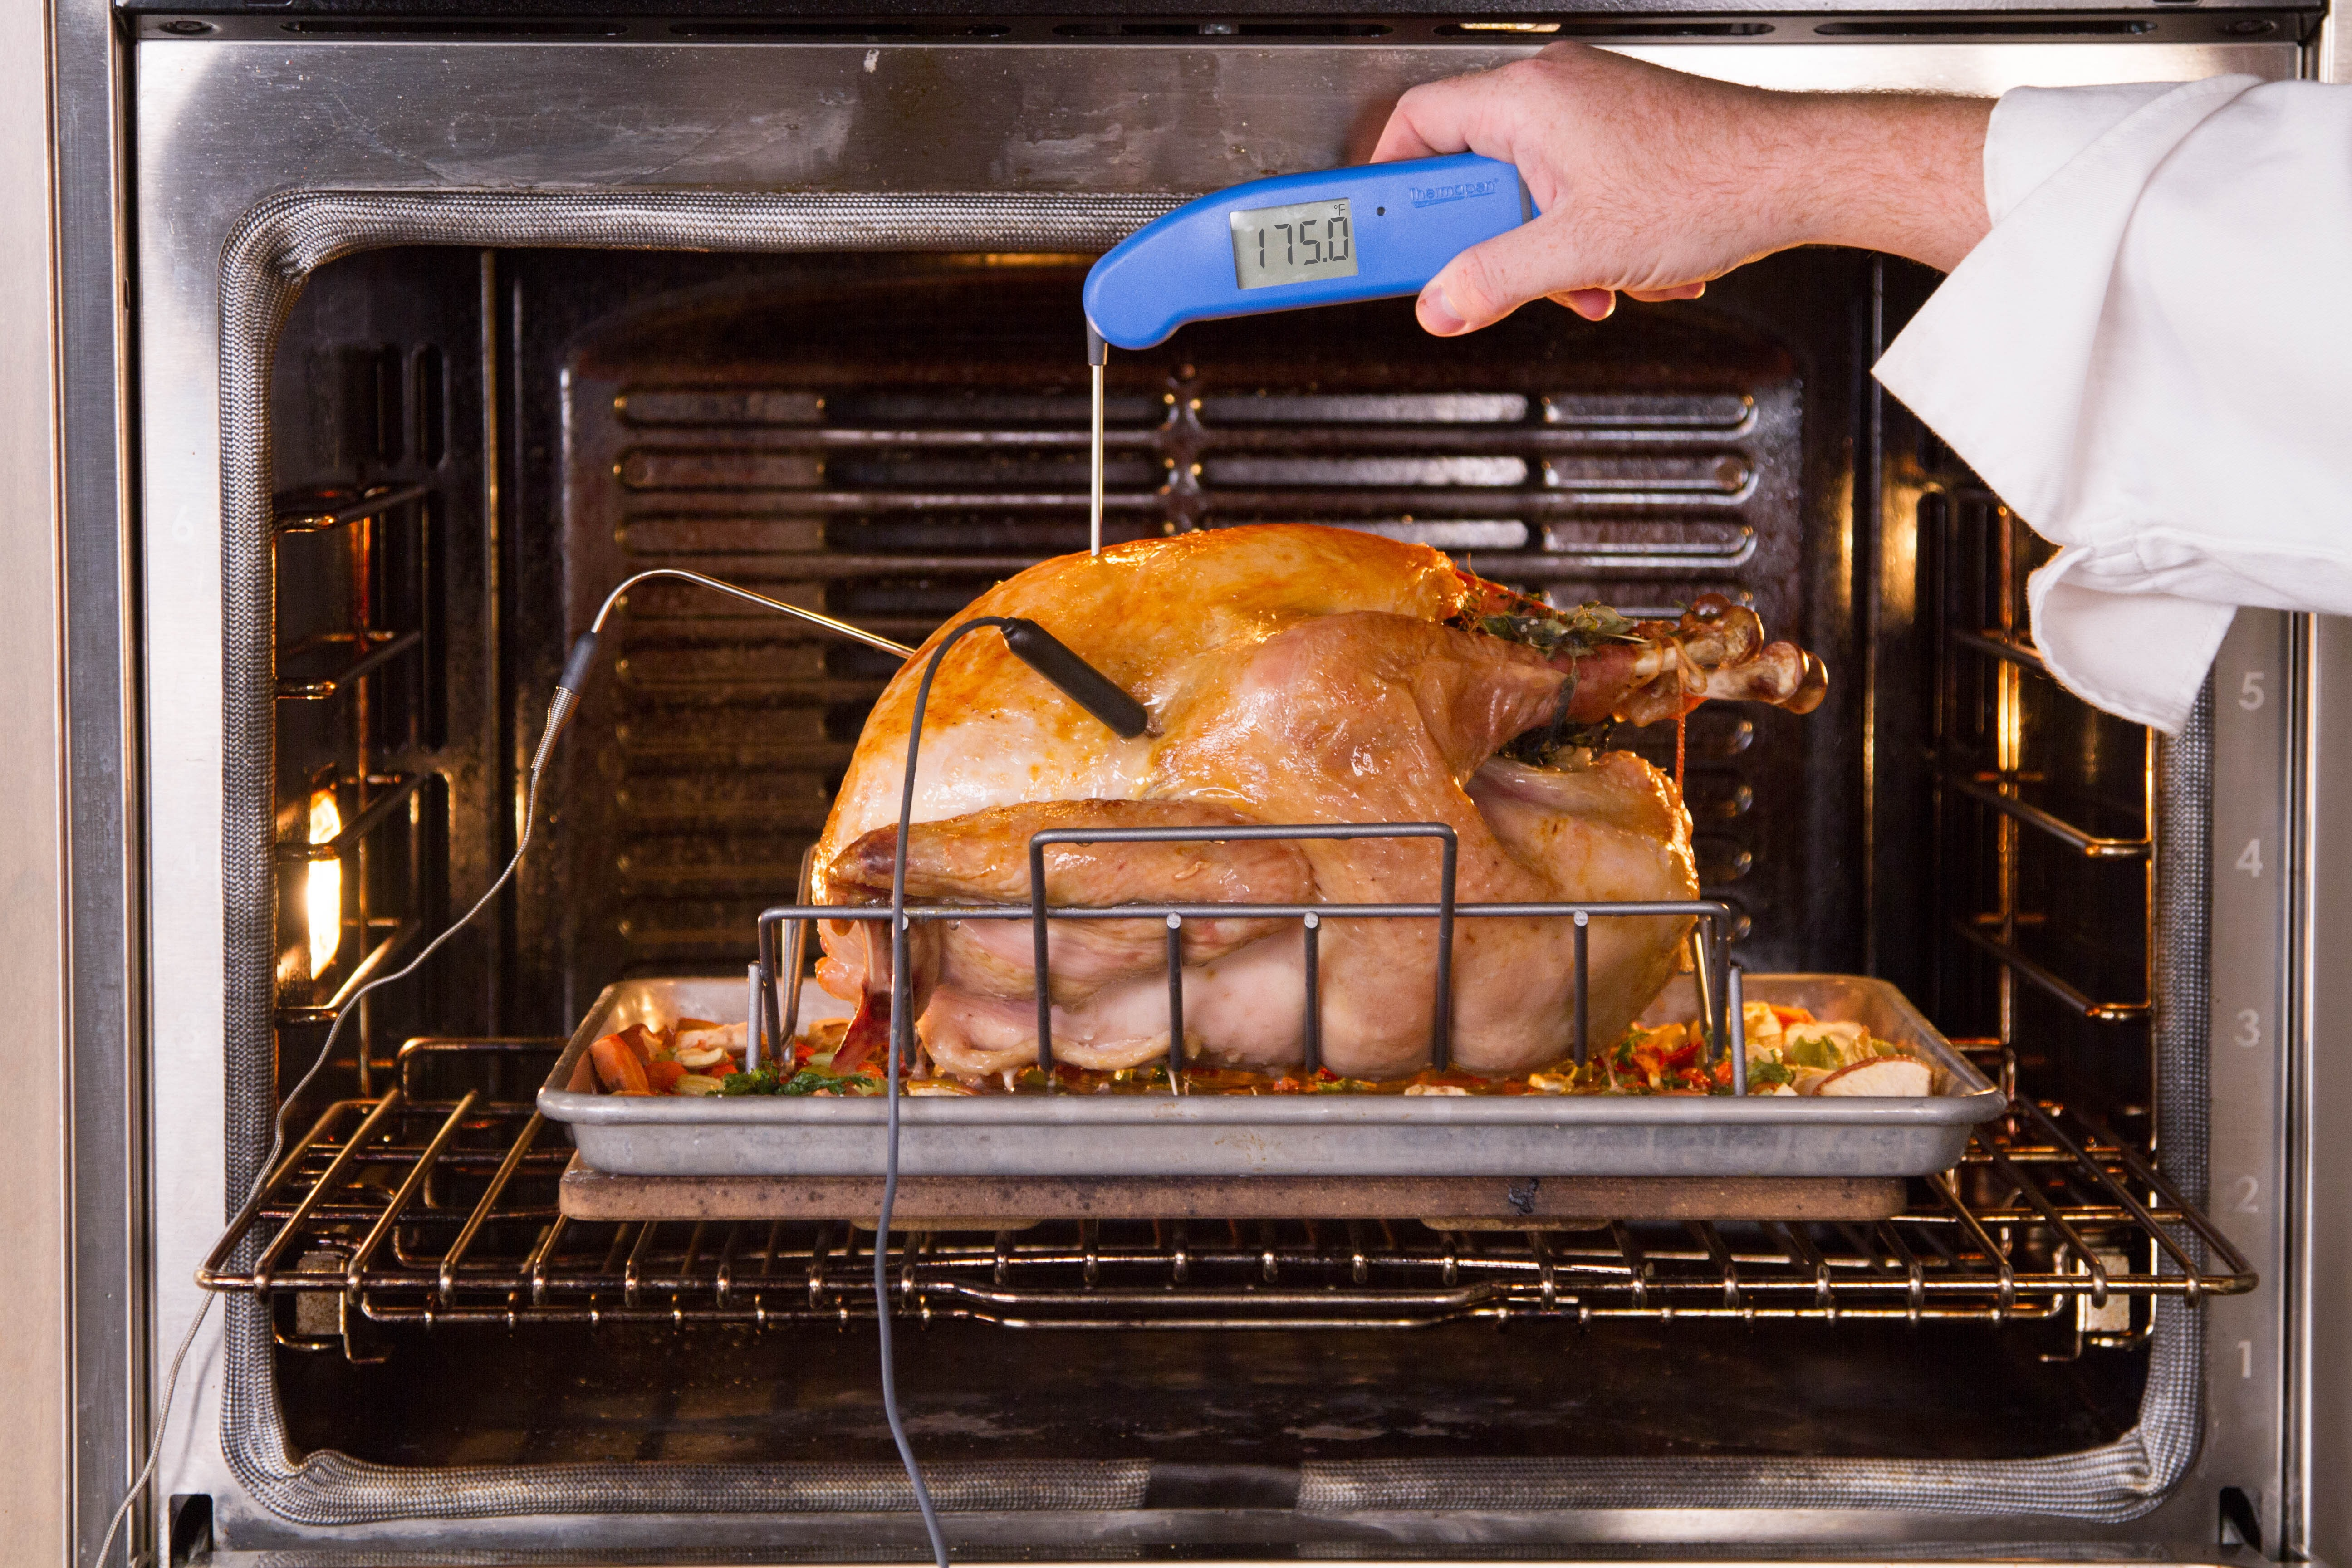 Verify your turkey's temp in several places